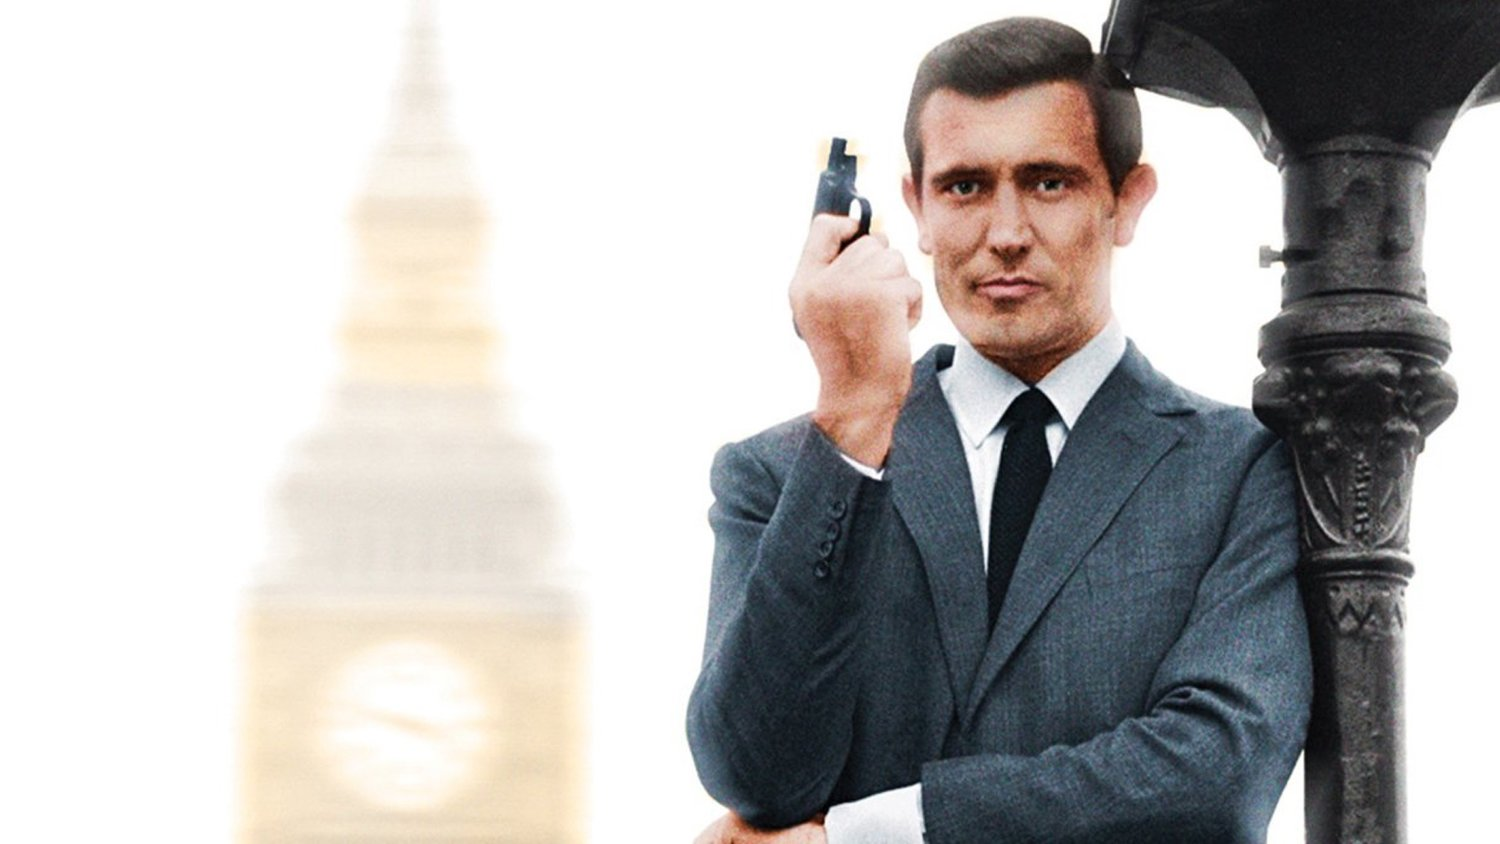 New James Bond Doc Tells the Crazy Story of One-Time 007 George Lazenby, Who Had it All and Gave it Up